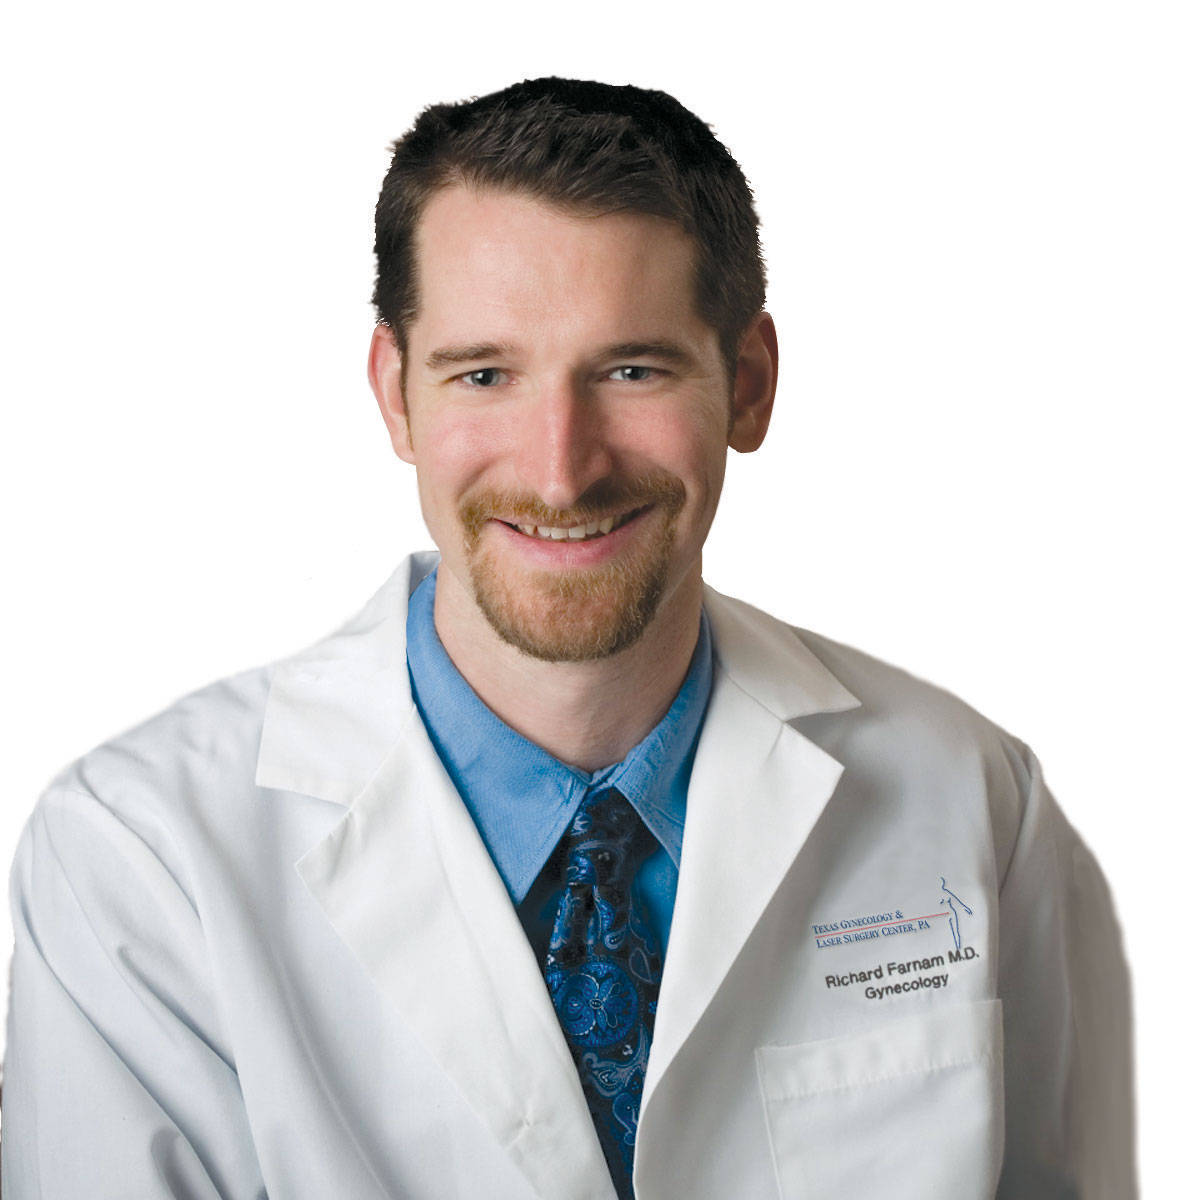 Dr. Richard Farnam, MD